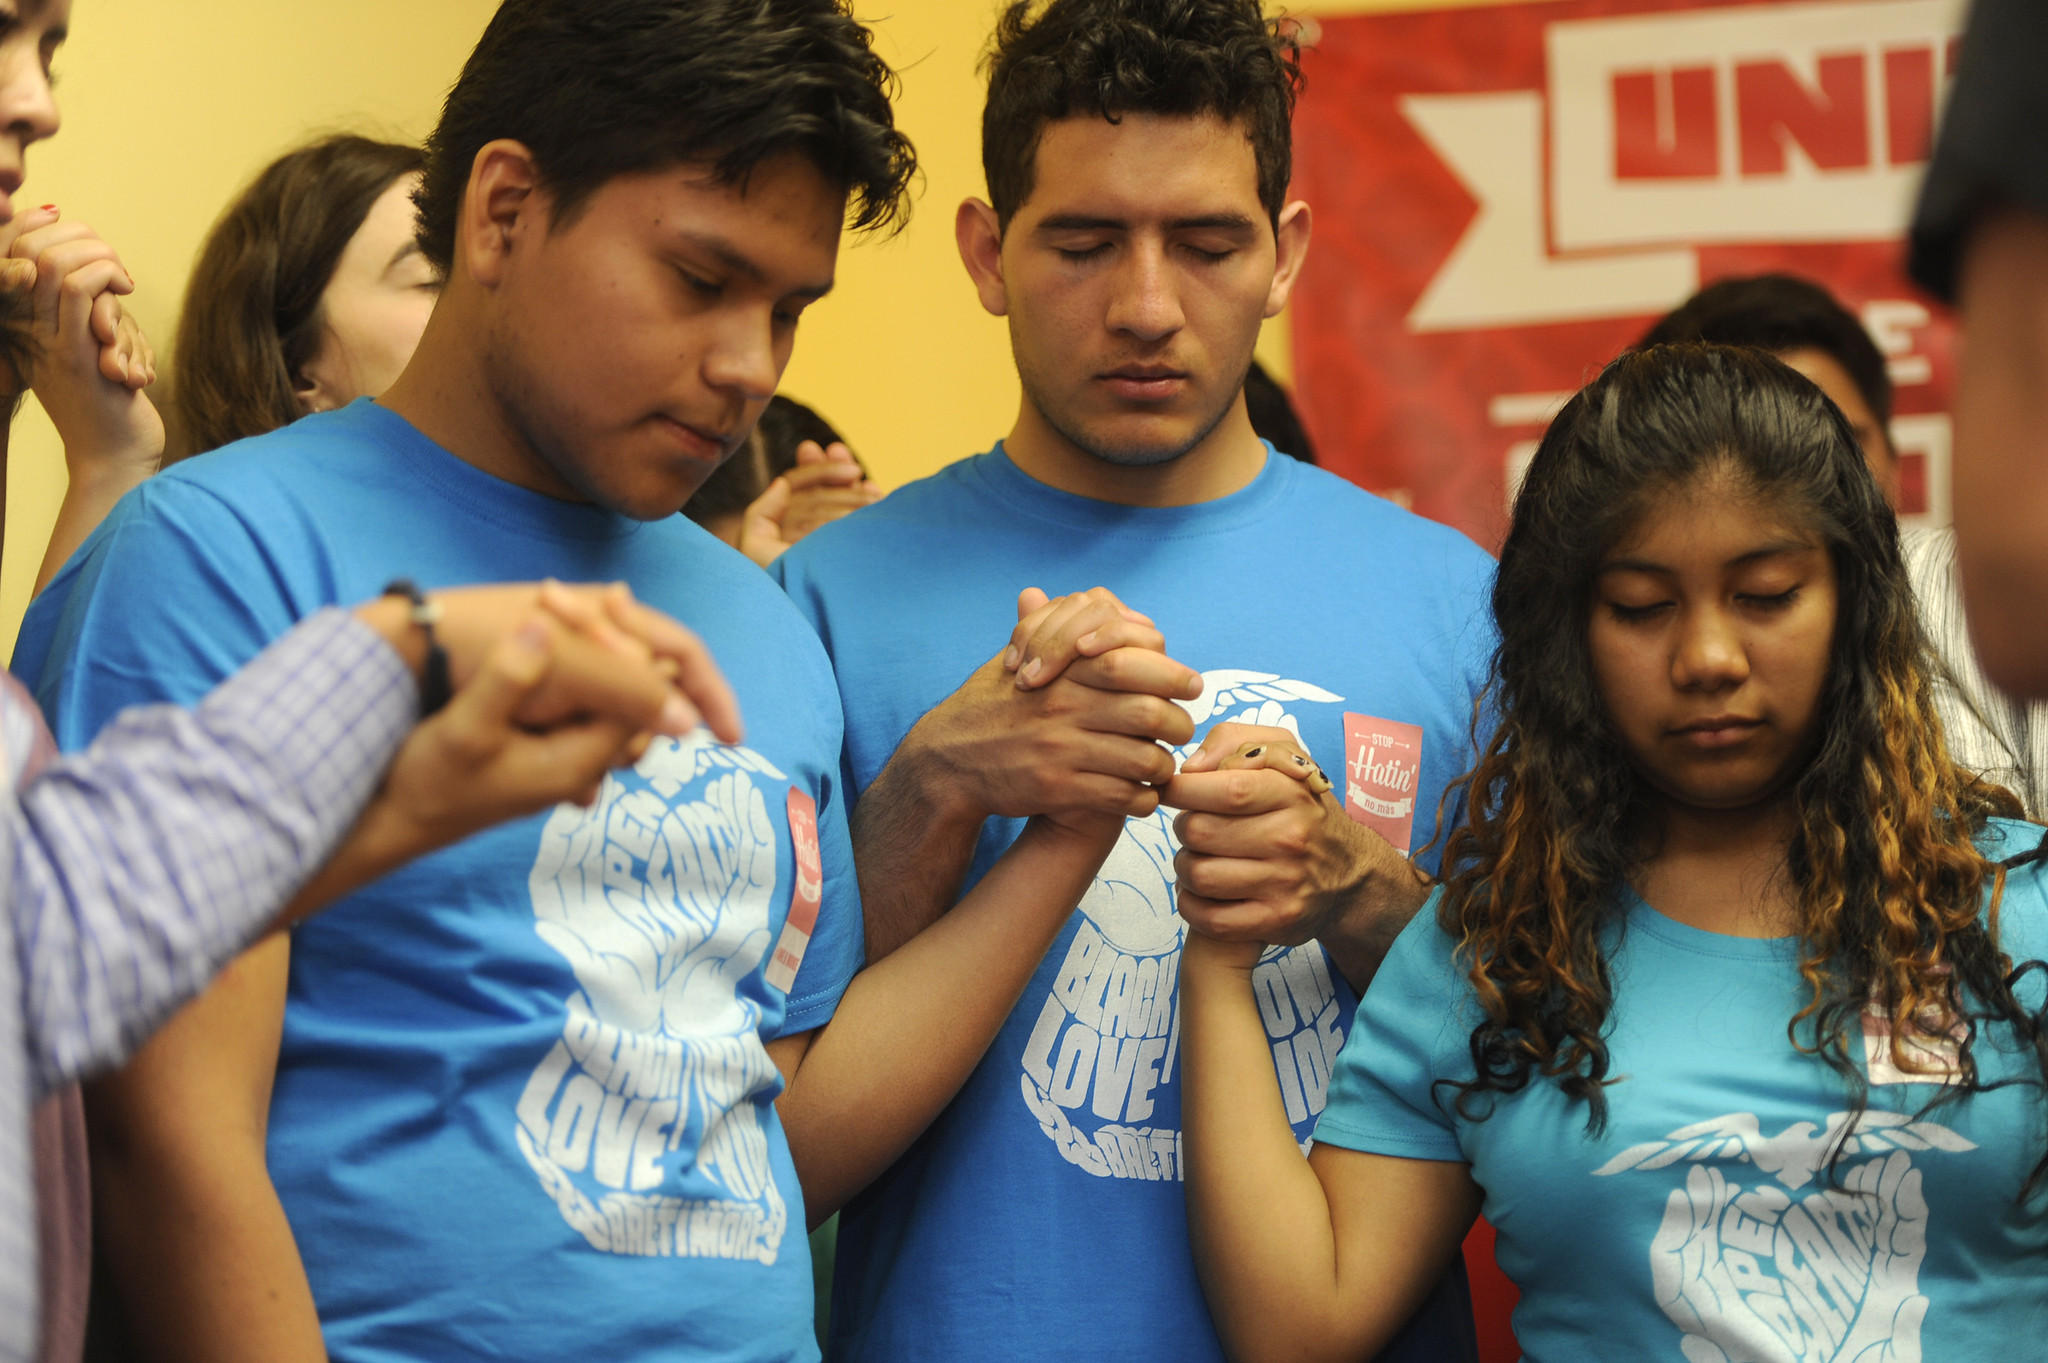 Left to right, praying at the end of a press conference: Jose Dominguez, Edwin Vasquez, Yanderi Hernandez. Representatives from hispanic and African American communities held a press conference at CASA de Maryland regarding ideas to prevent violence between the two communities. (Barbara Haddock Taylor, Baltimore Sun)